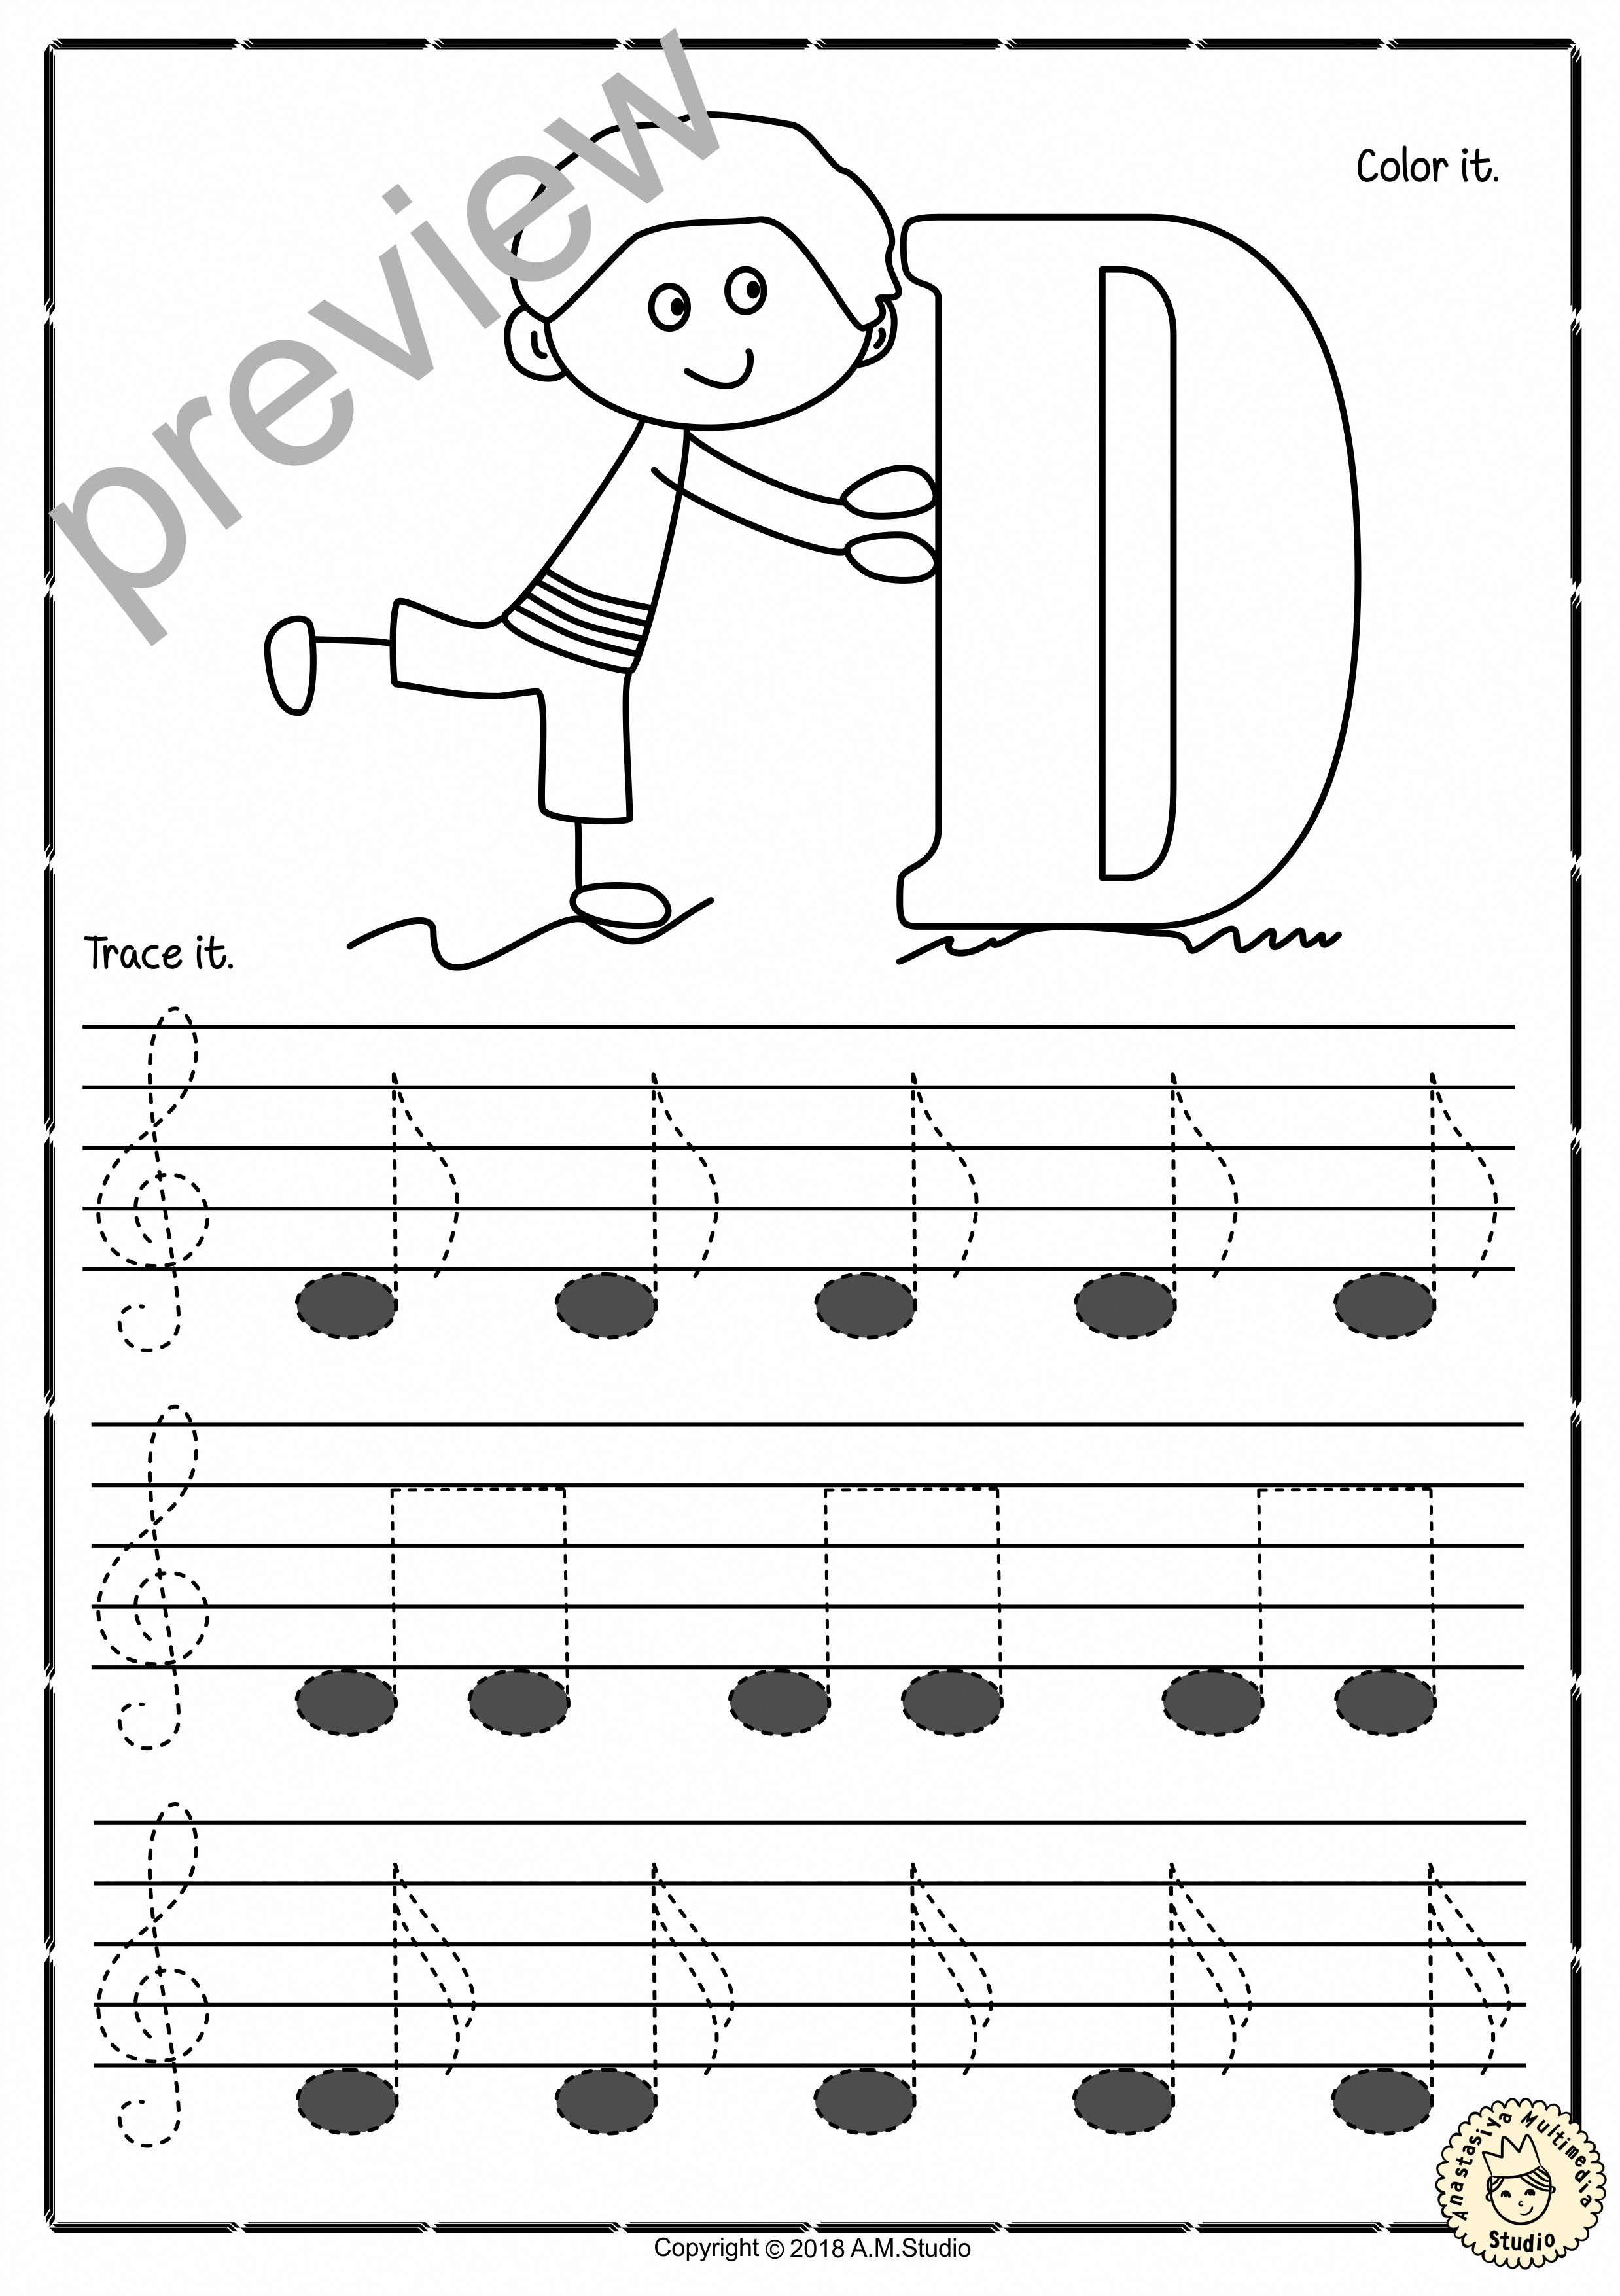 A Set Of 26 Music Worksheets Is Created To Help Your